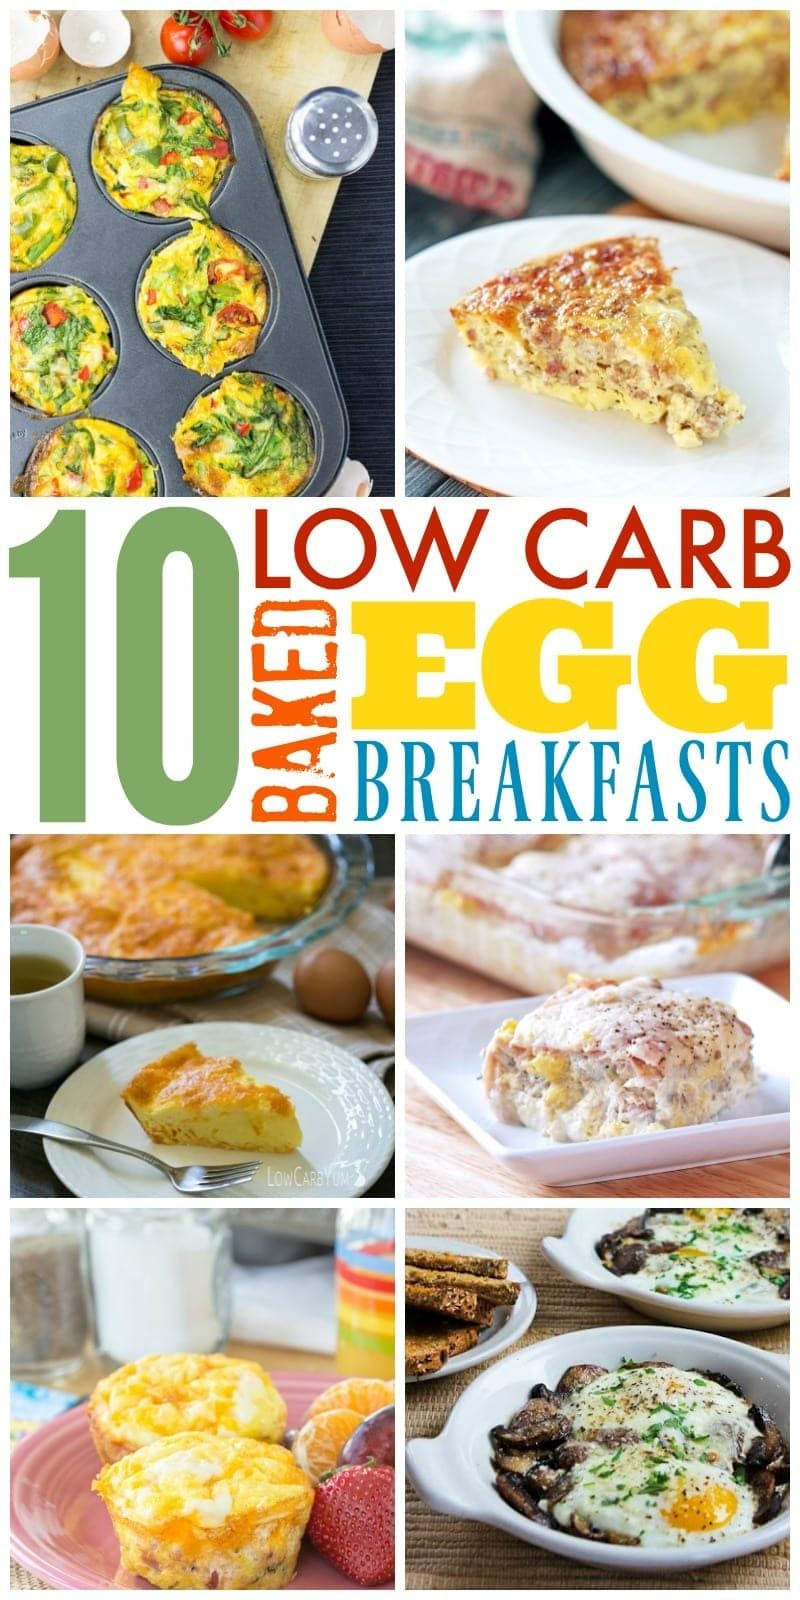 10 Low Carb Baked Eggs Breakfast Ideas - A low carb diet can be challenging sometimes trying to come up with new and creative ways to enjoy eggs. These 10 dishes are all delicious and perfect for low carb, Paleo, ketogenic and gluten-free diets. #lowcarb #keto #breakfast